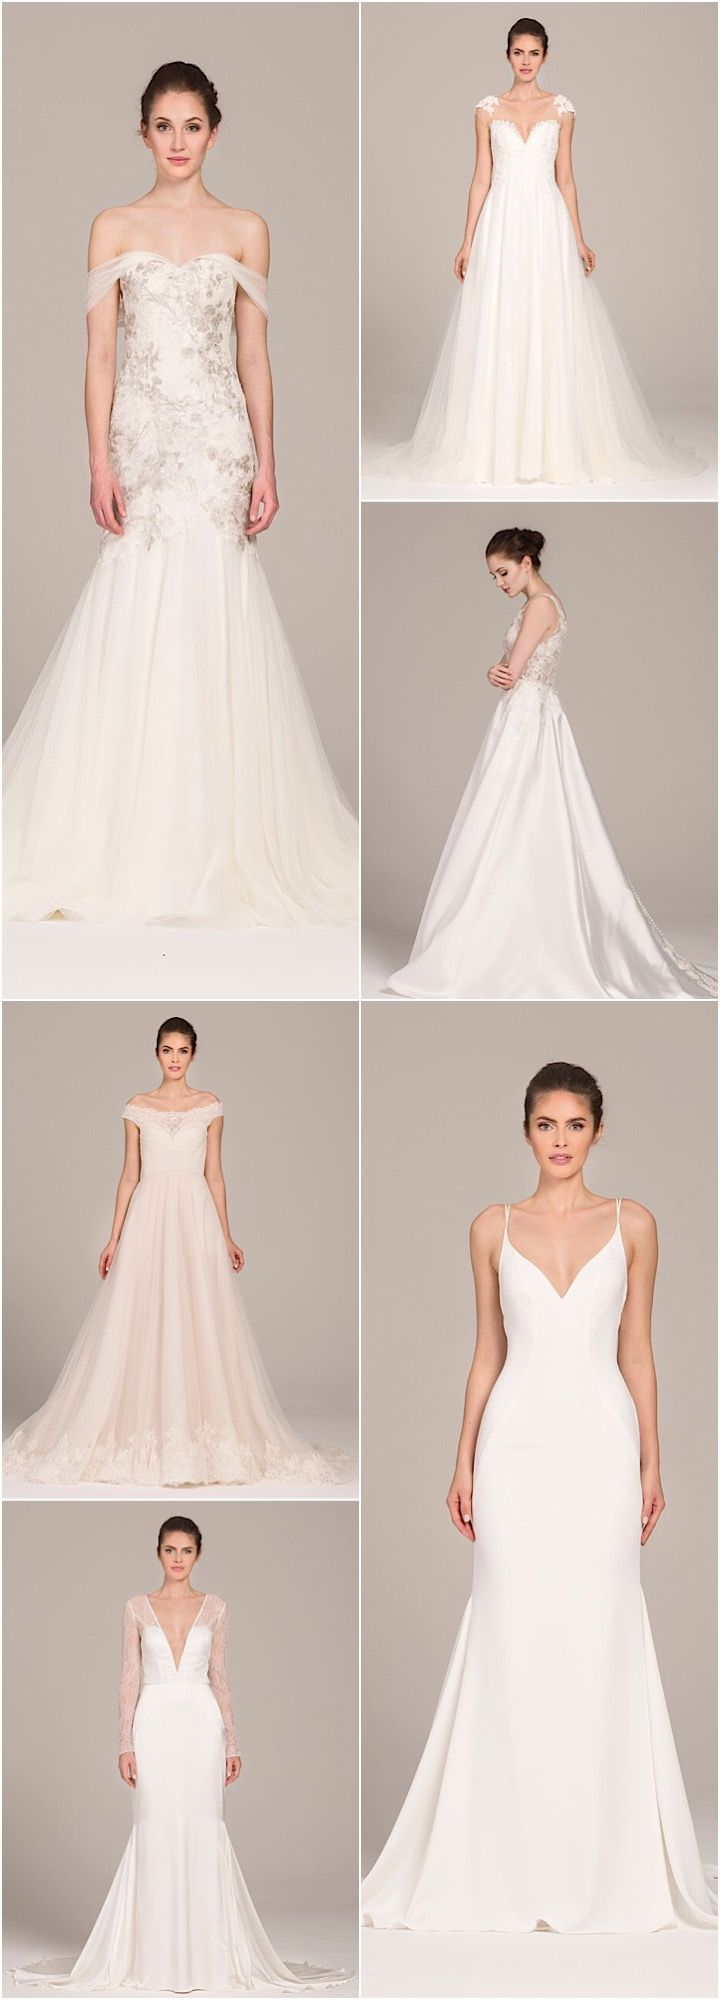 1826 best Stuff images on Pinterest | Wedding dressses, Marriage and ...